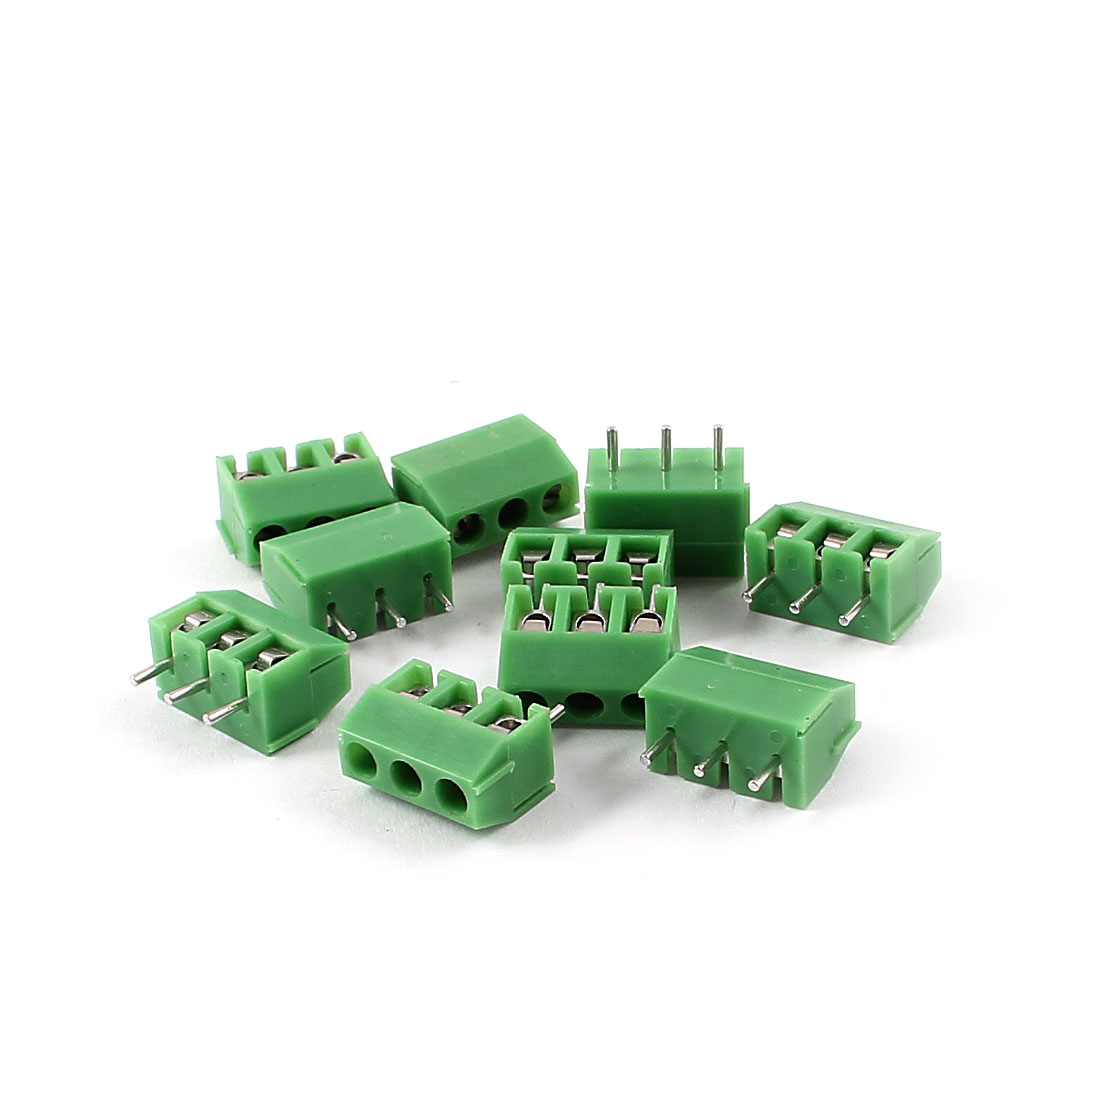 10 Pieces 3Pin 3.96mm Spacing 300V 10A PCB Mount Type Terminal Block Green